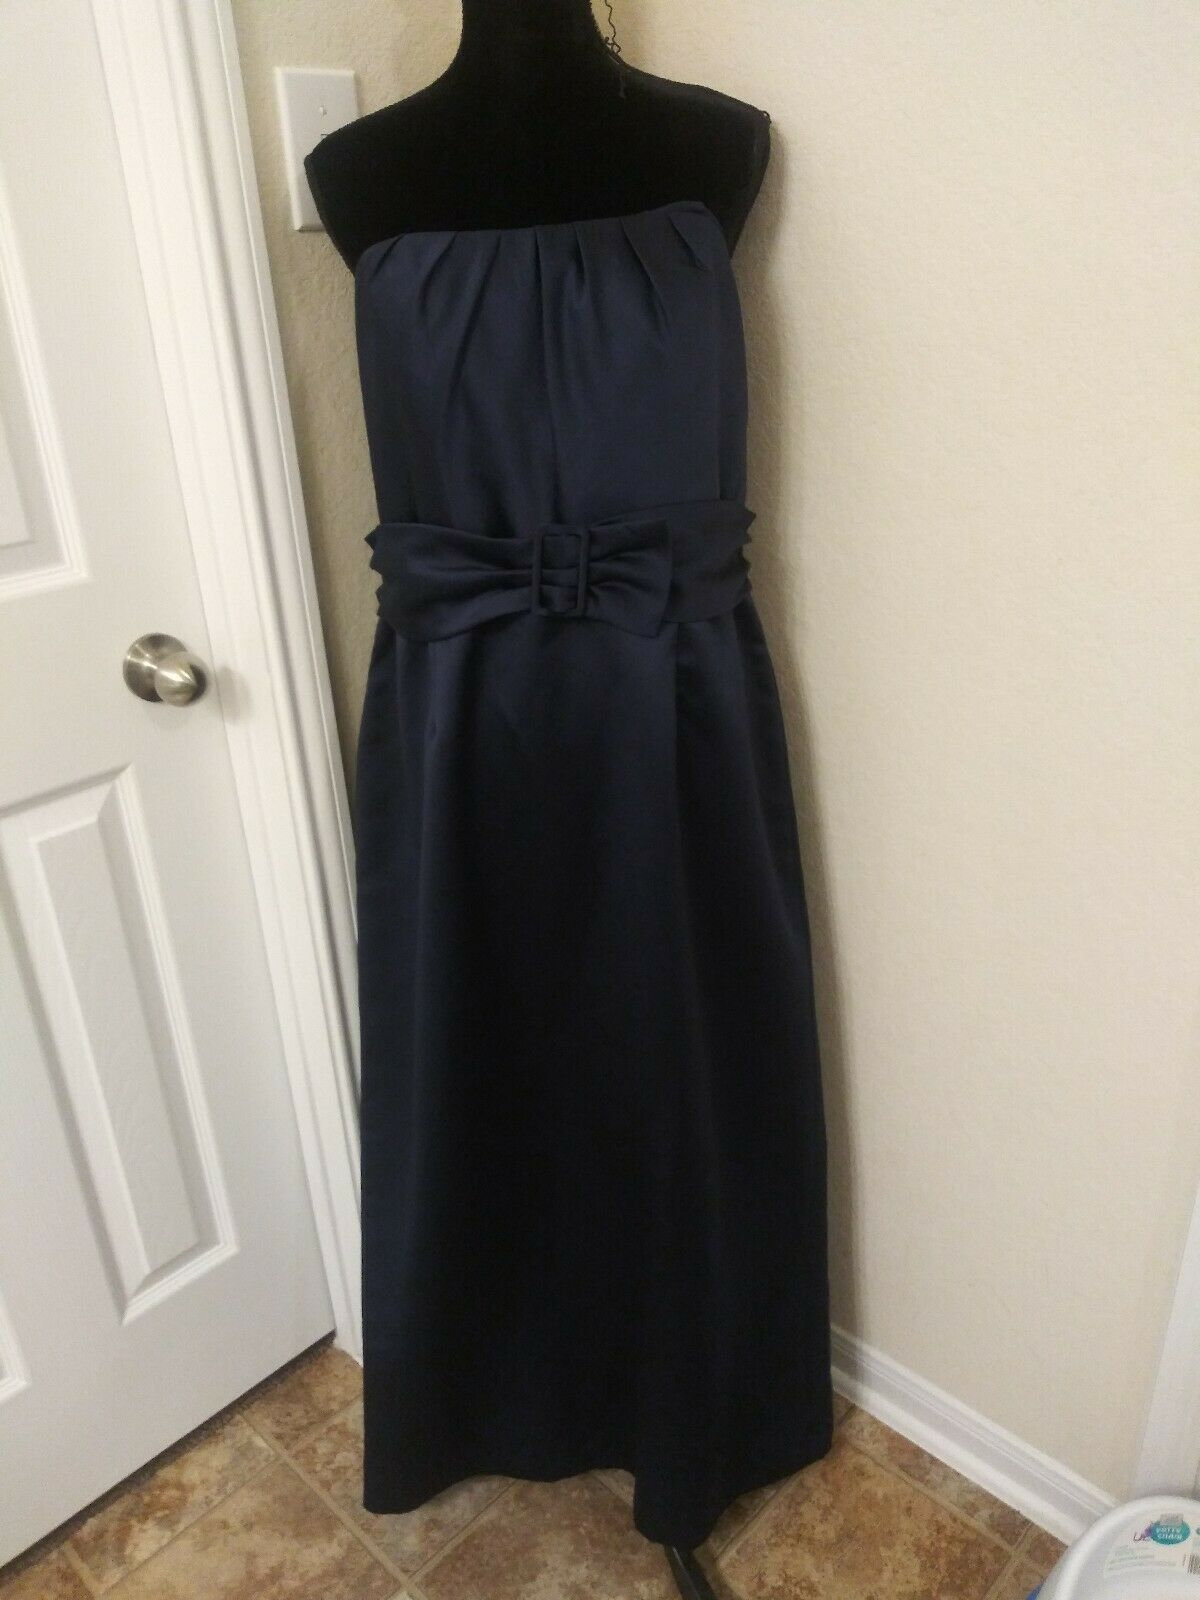 Primary image for David's Bridal size 16 strapless dress Navy Blue Long Prom bridesmaid